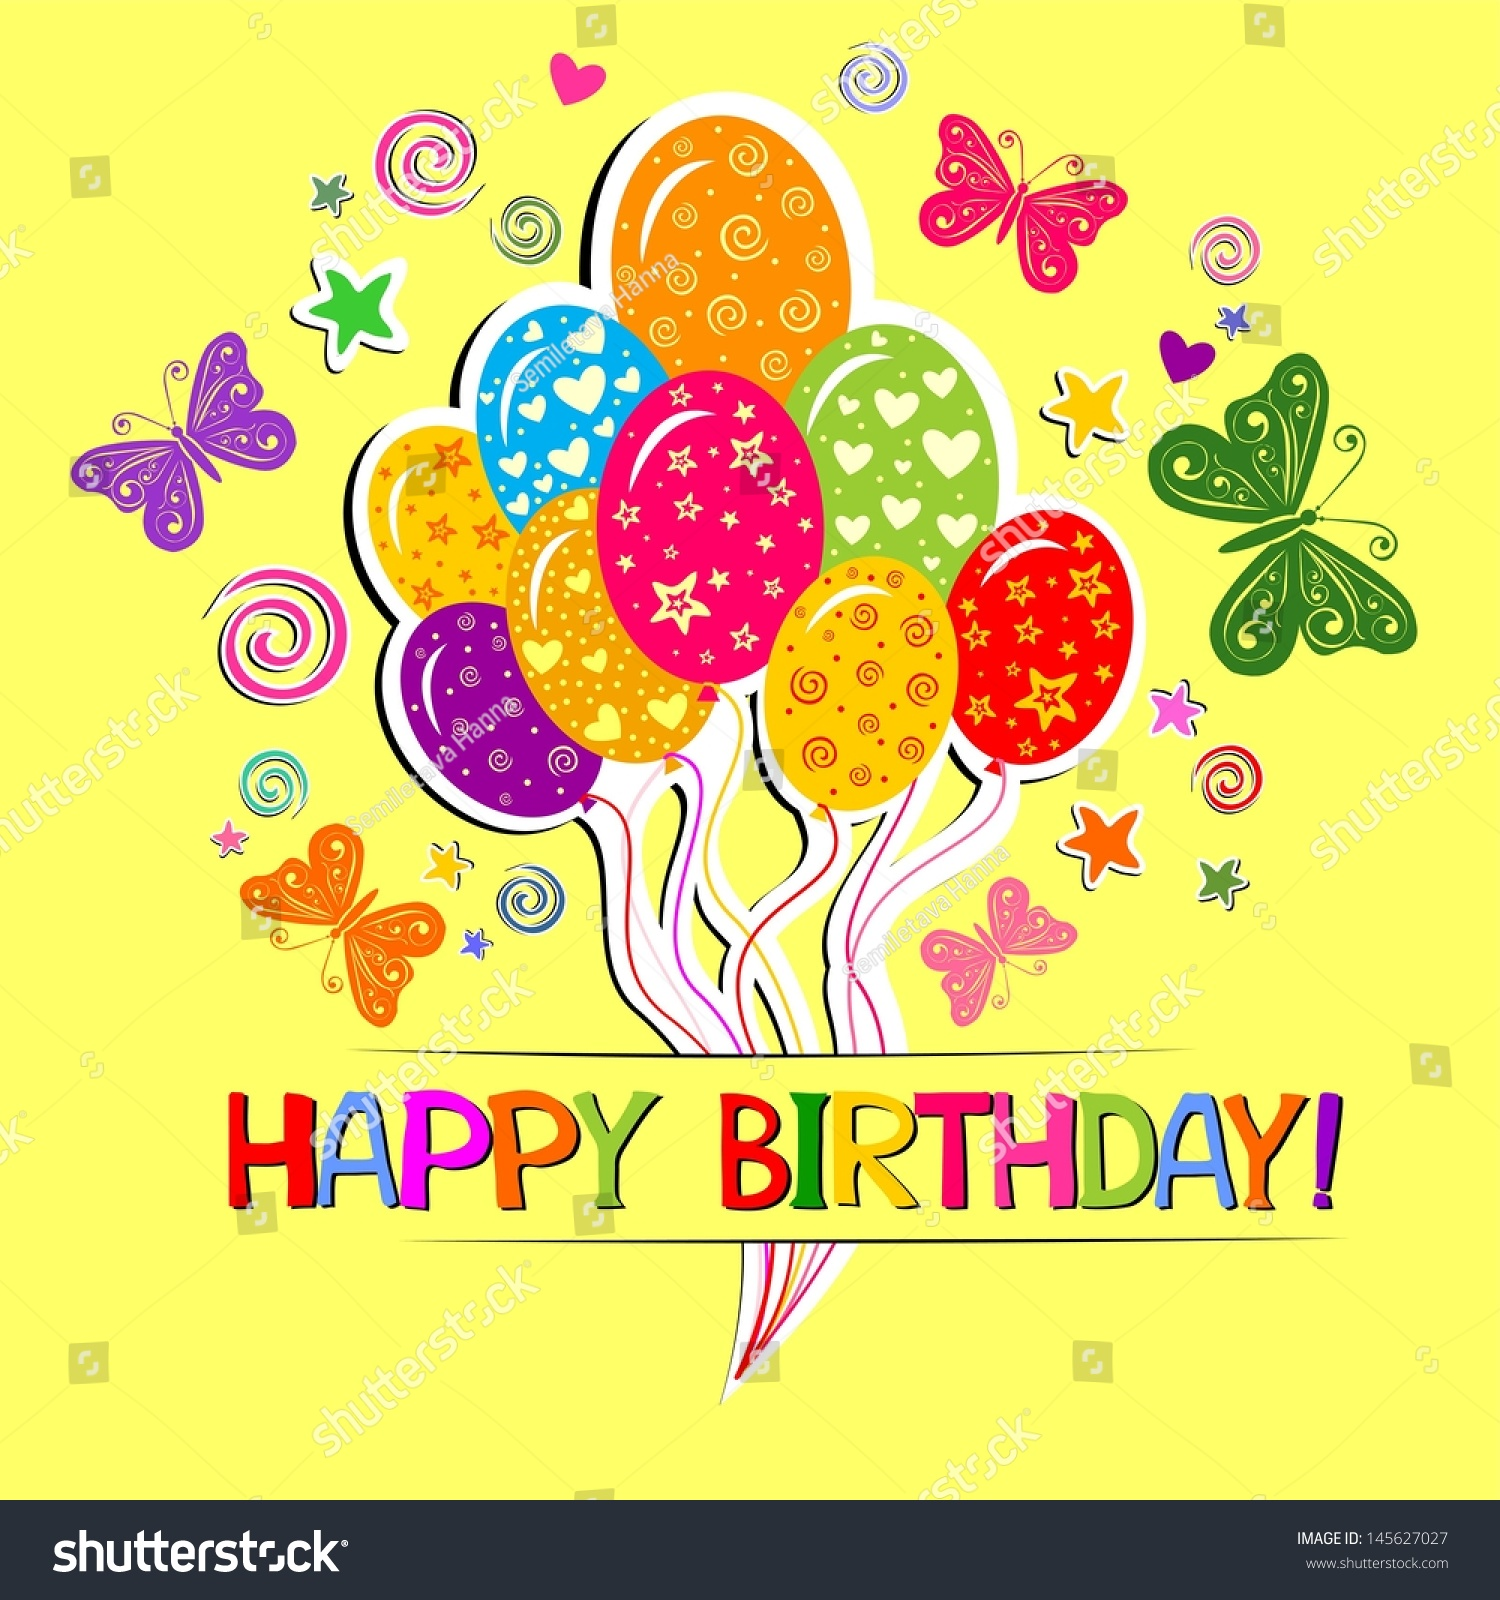 Image result for happy birthday flowers animals gifs